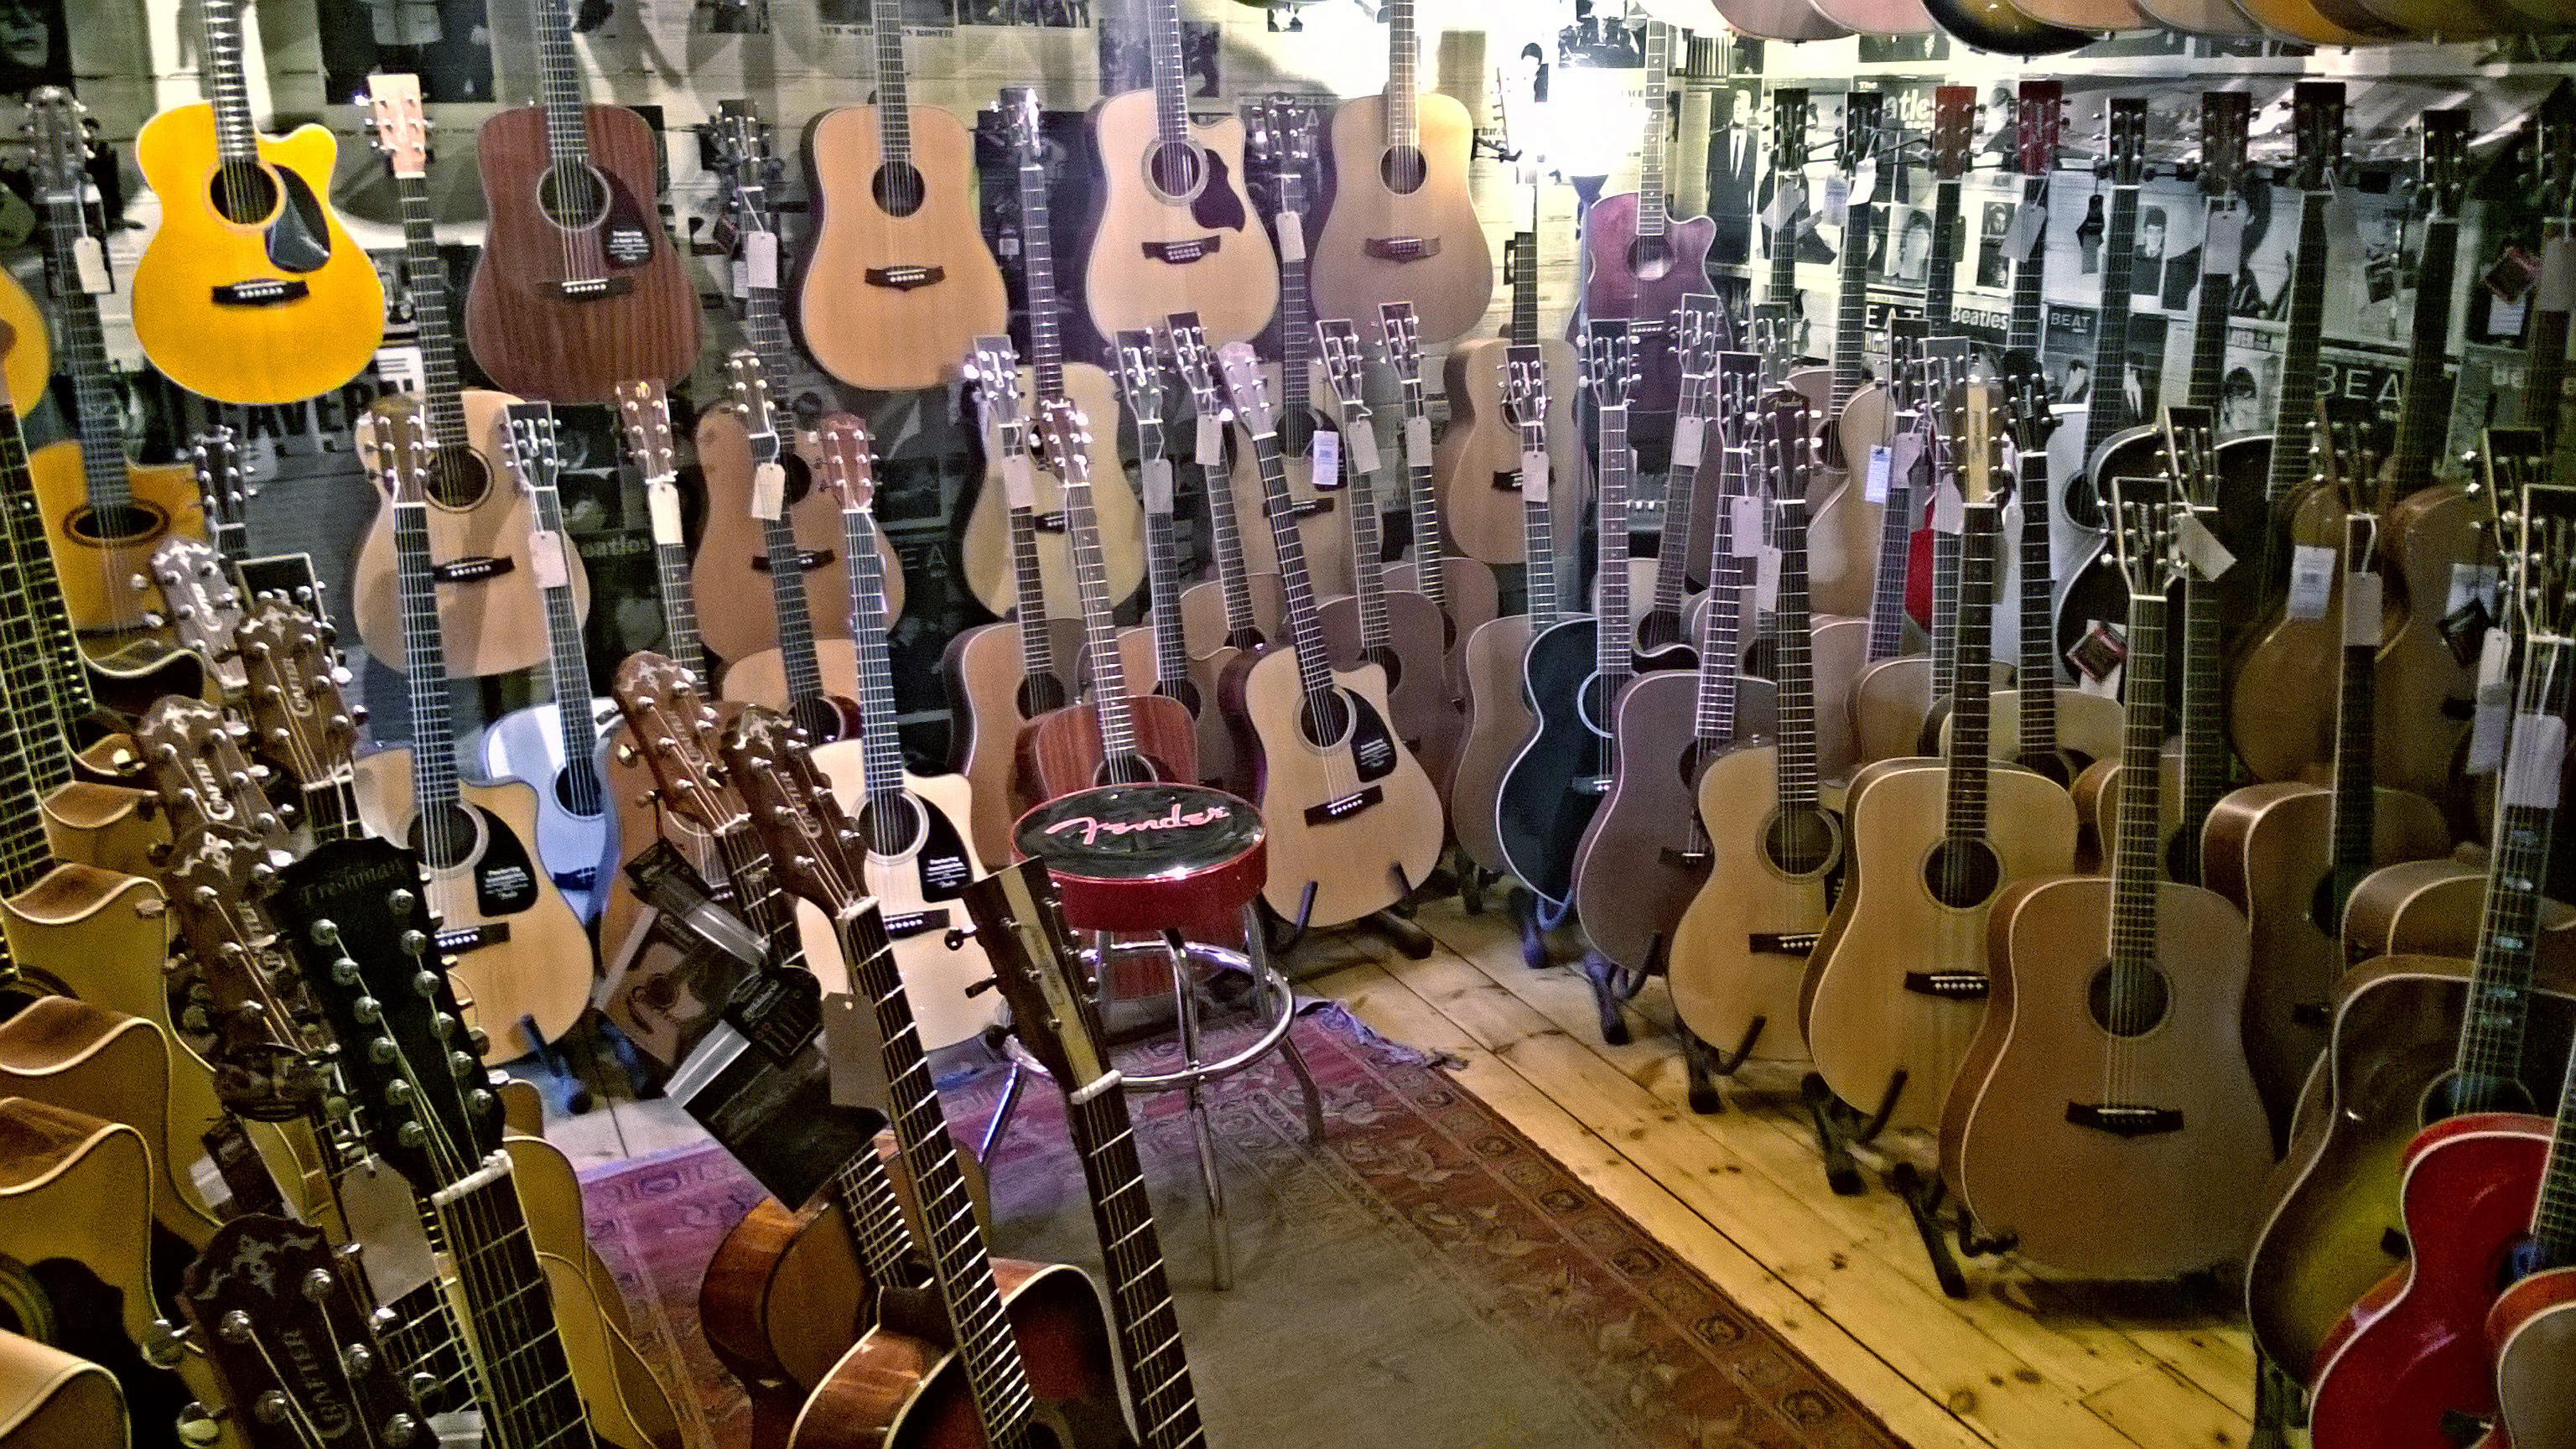 pocket number 24 hank s guitar shop denmark street artrospektive. Black Bedroom Furniture Sets. Home Design Ideas